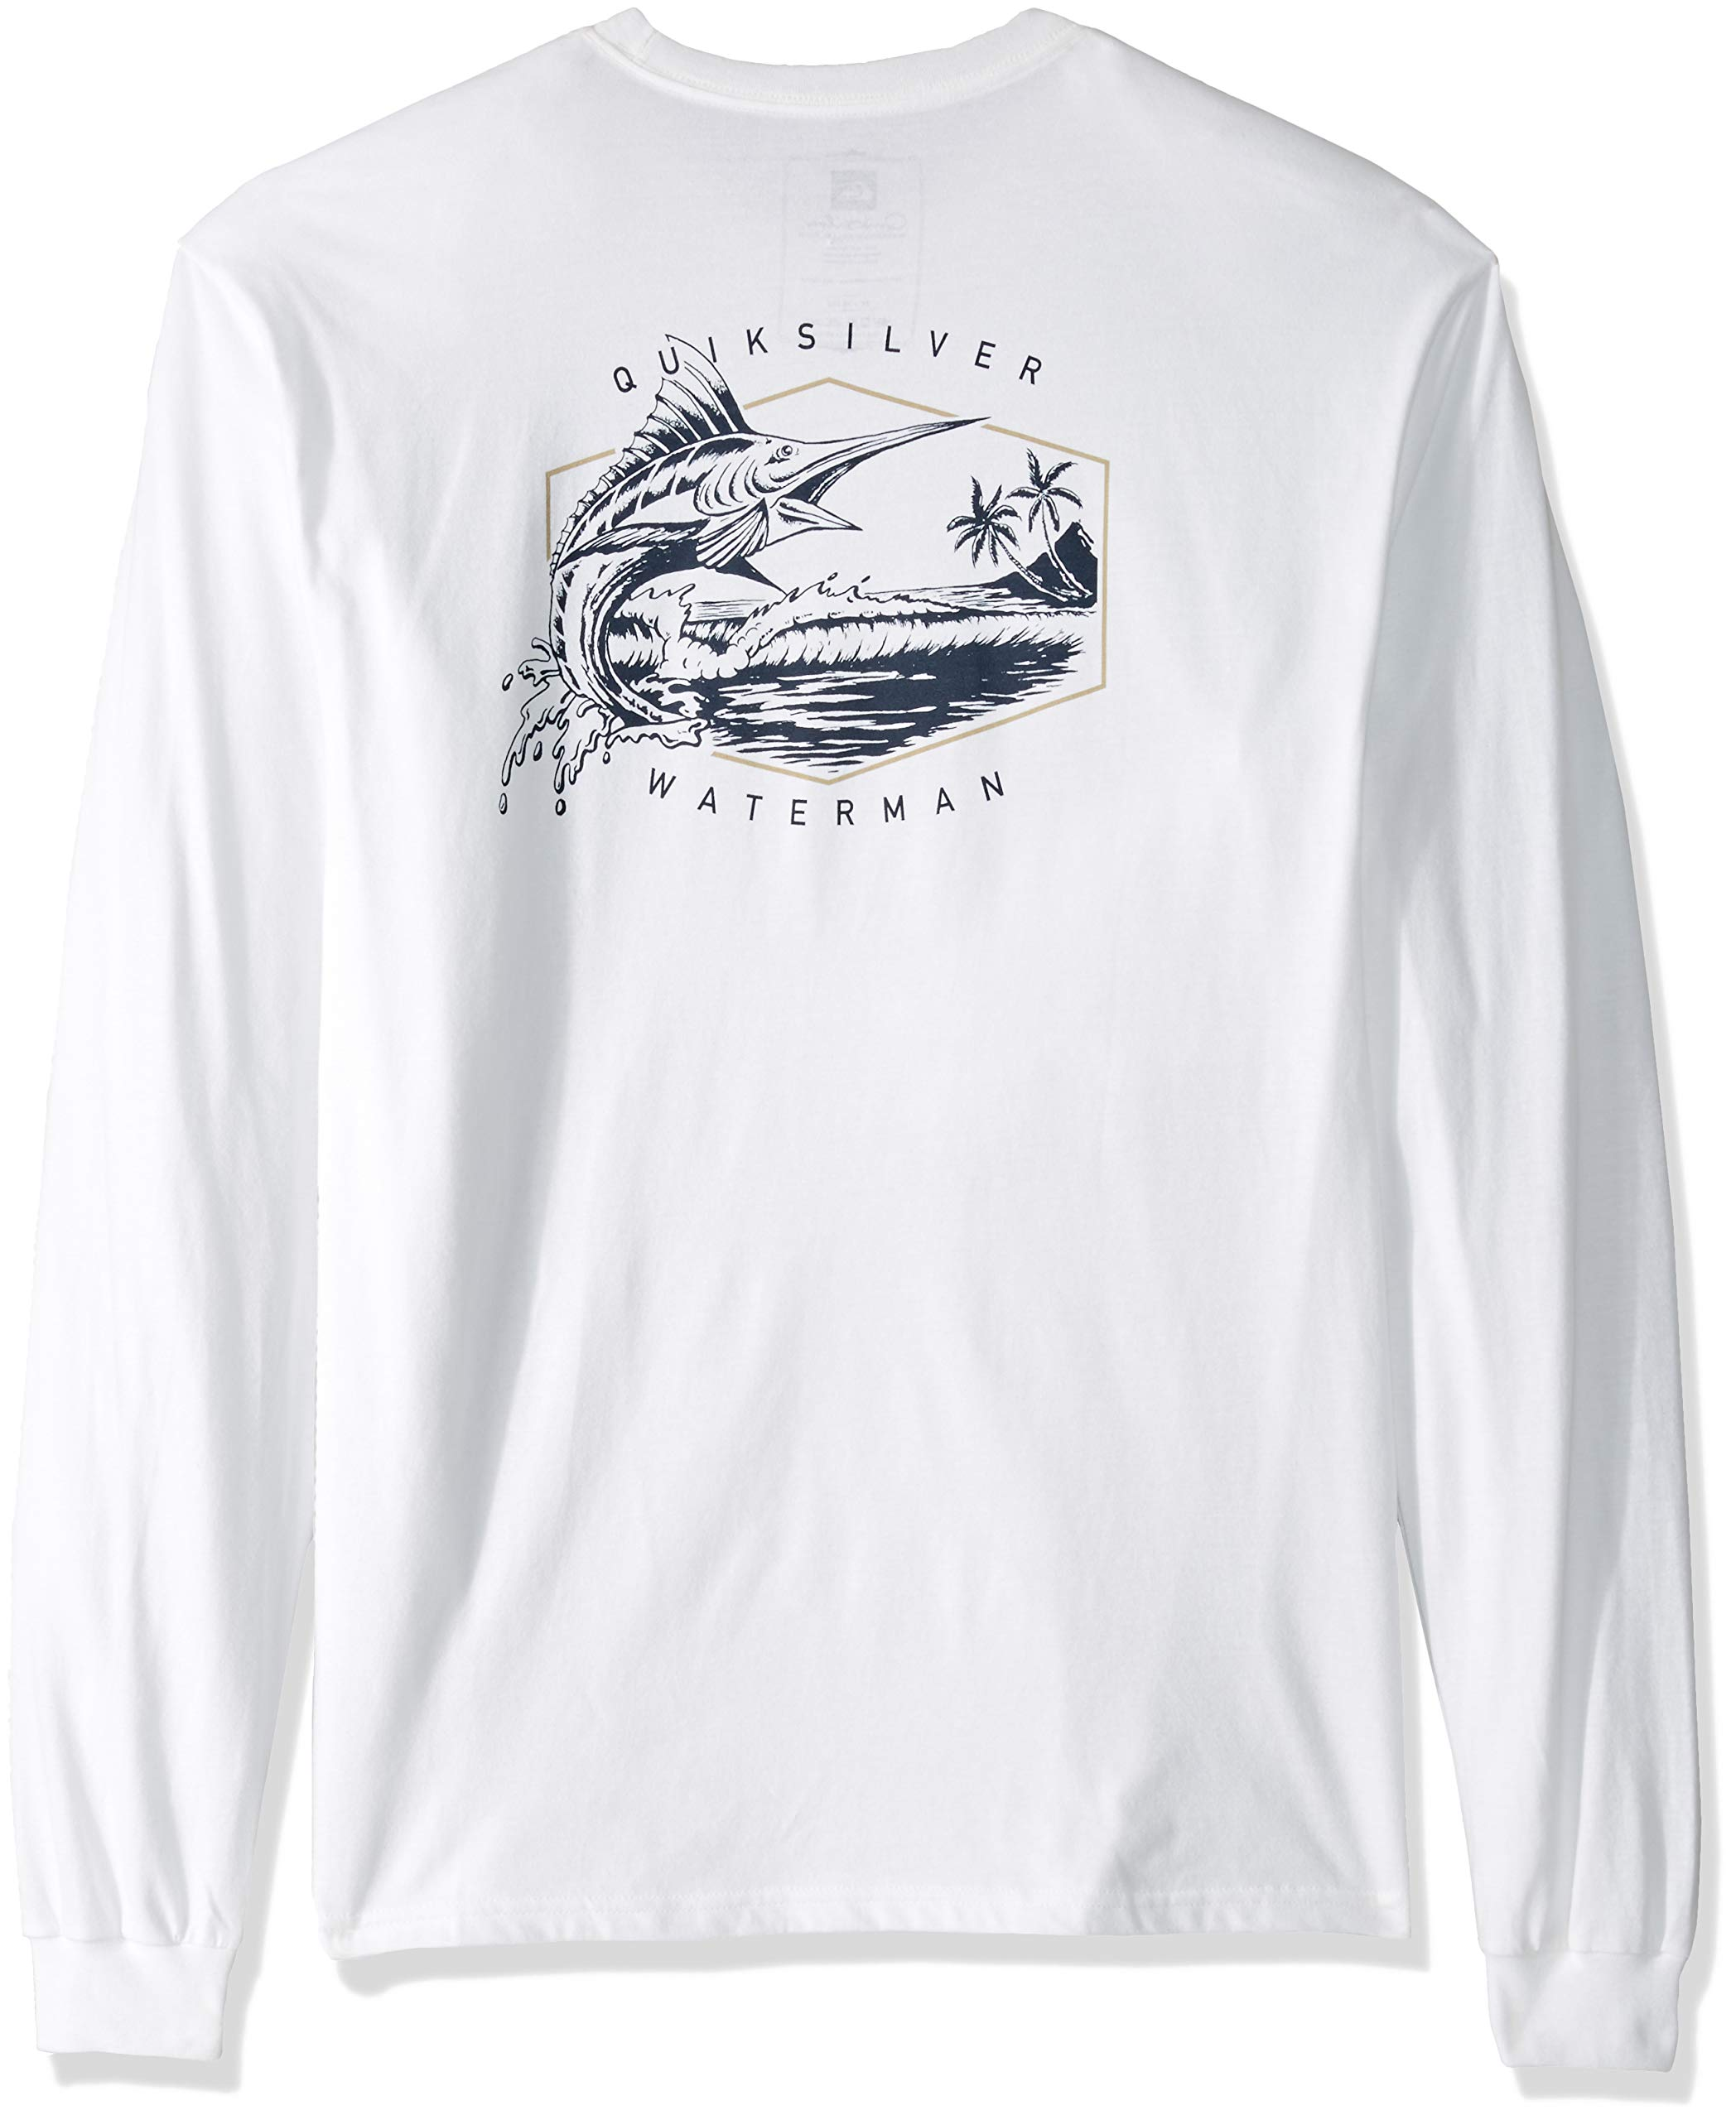 Quiksilver Men's Jumper Long Sleeve TEE Shirt, White, L by Quiksilver (Image #2)